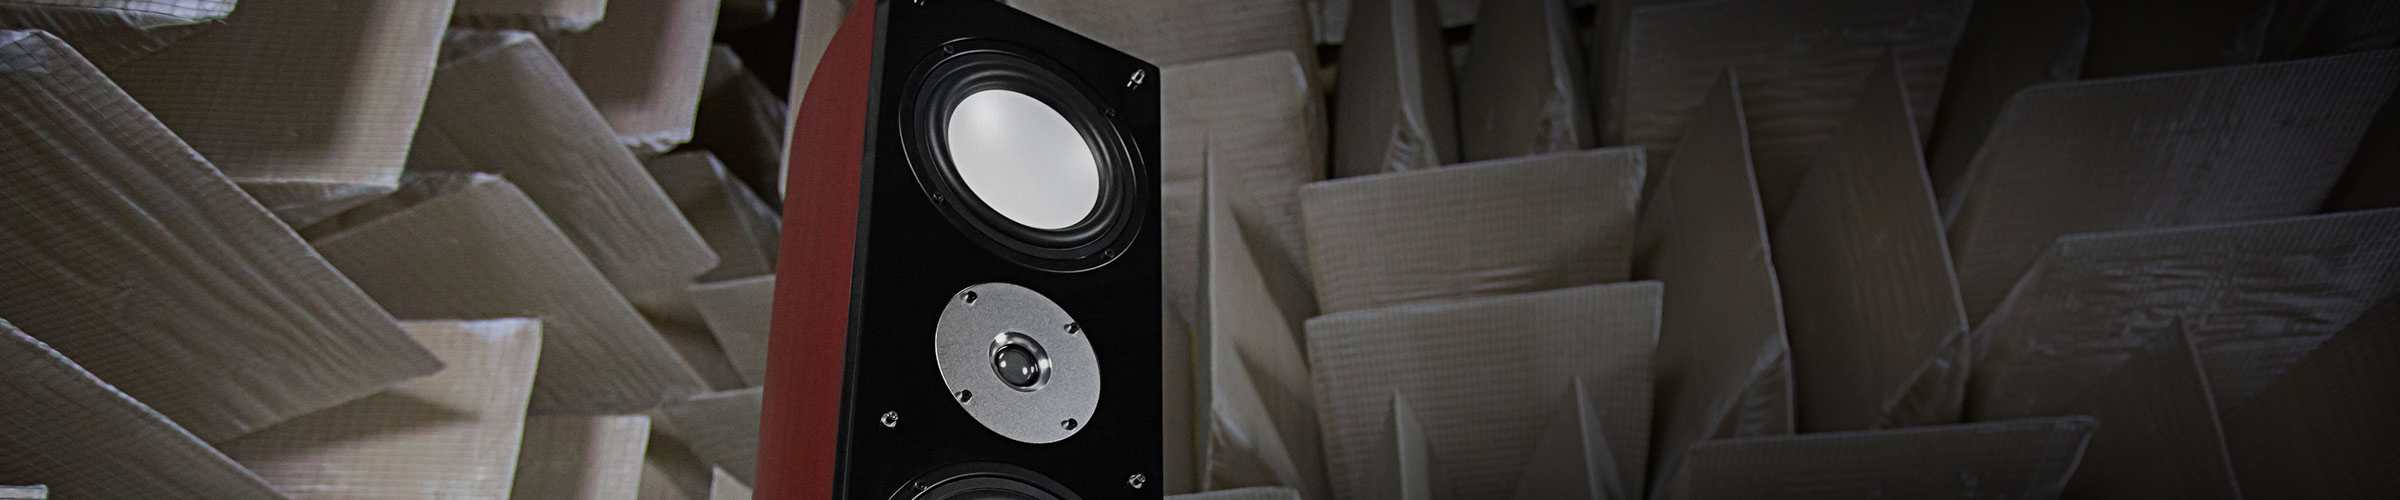 XLHTB Surround Sound System Lifestyle